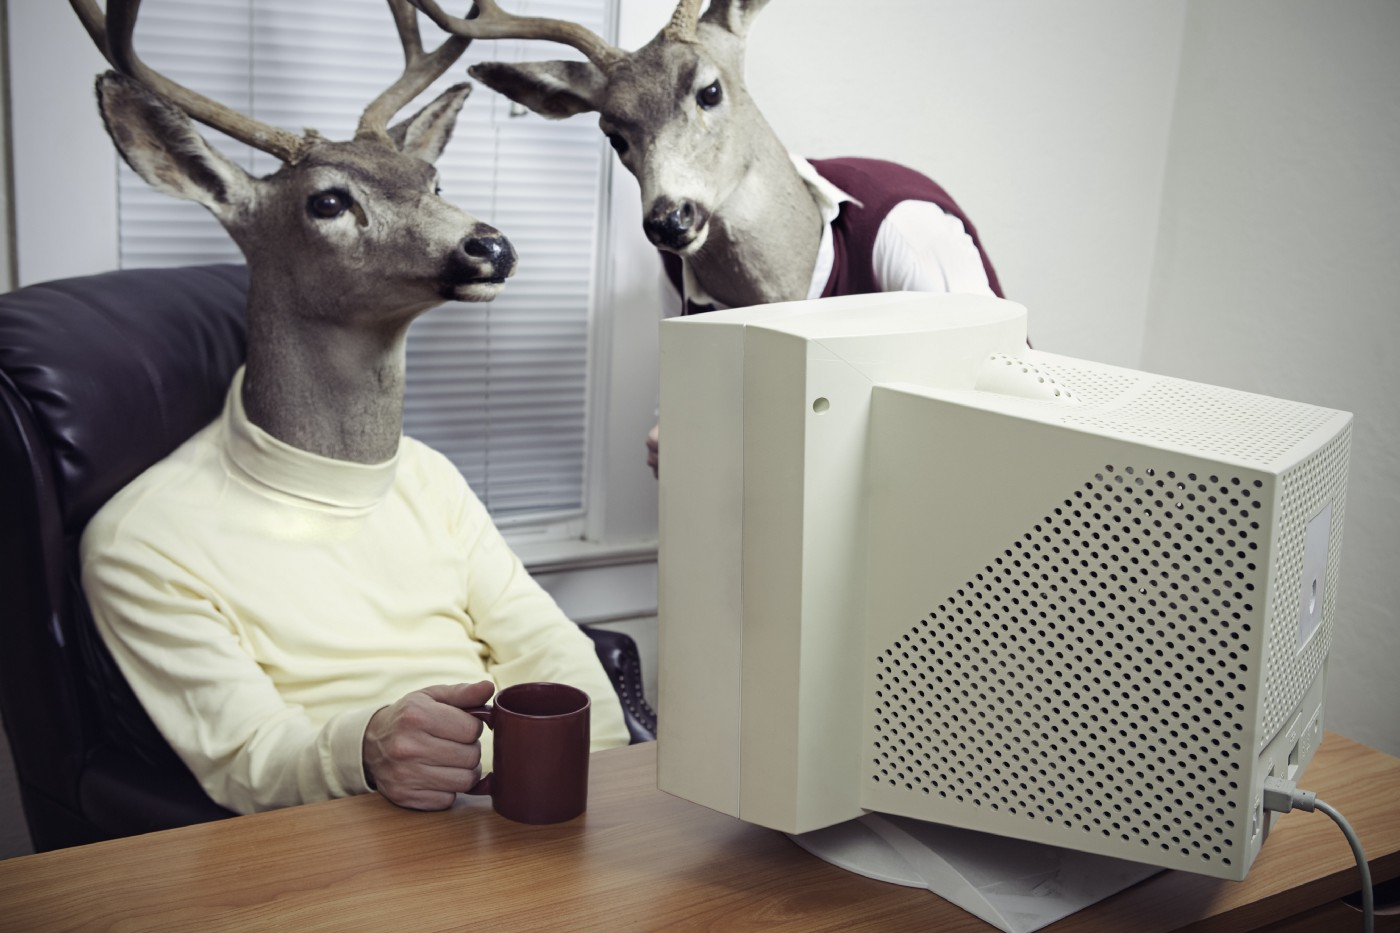 Two deer people learning how to code on an old computer